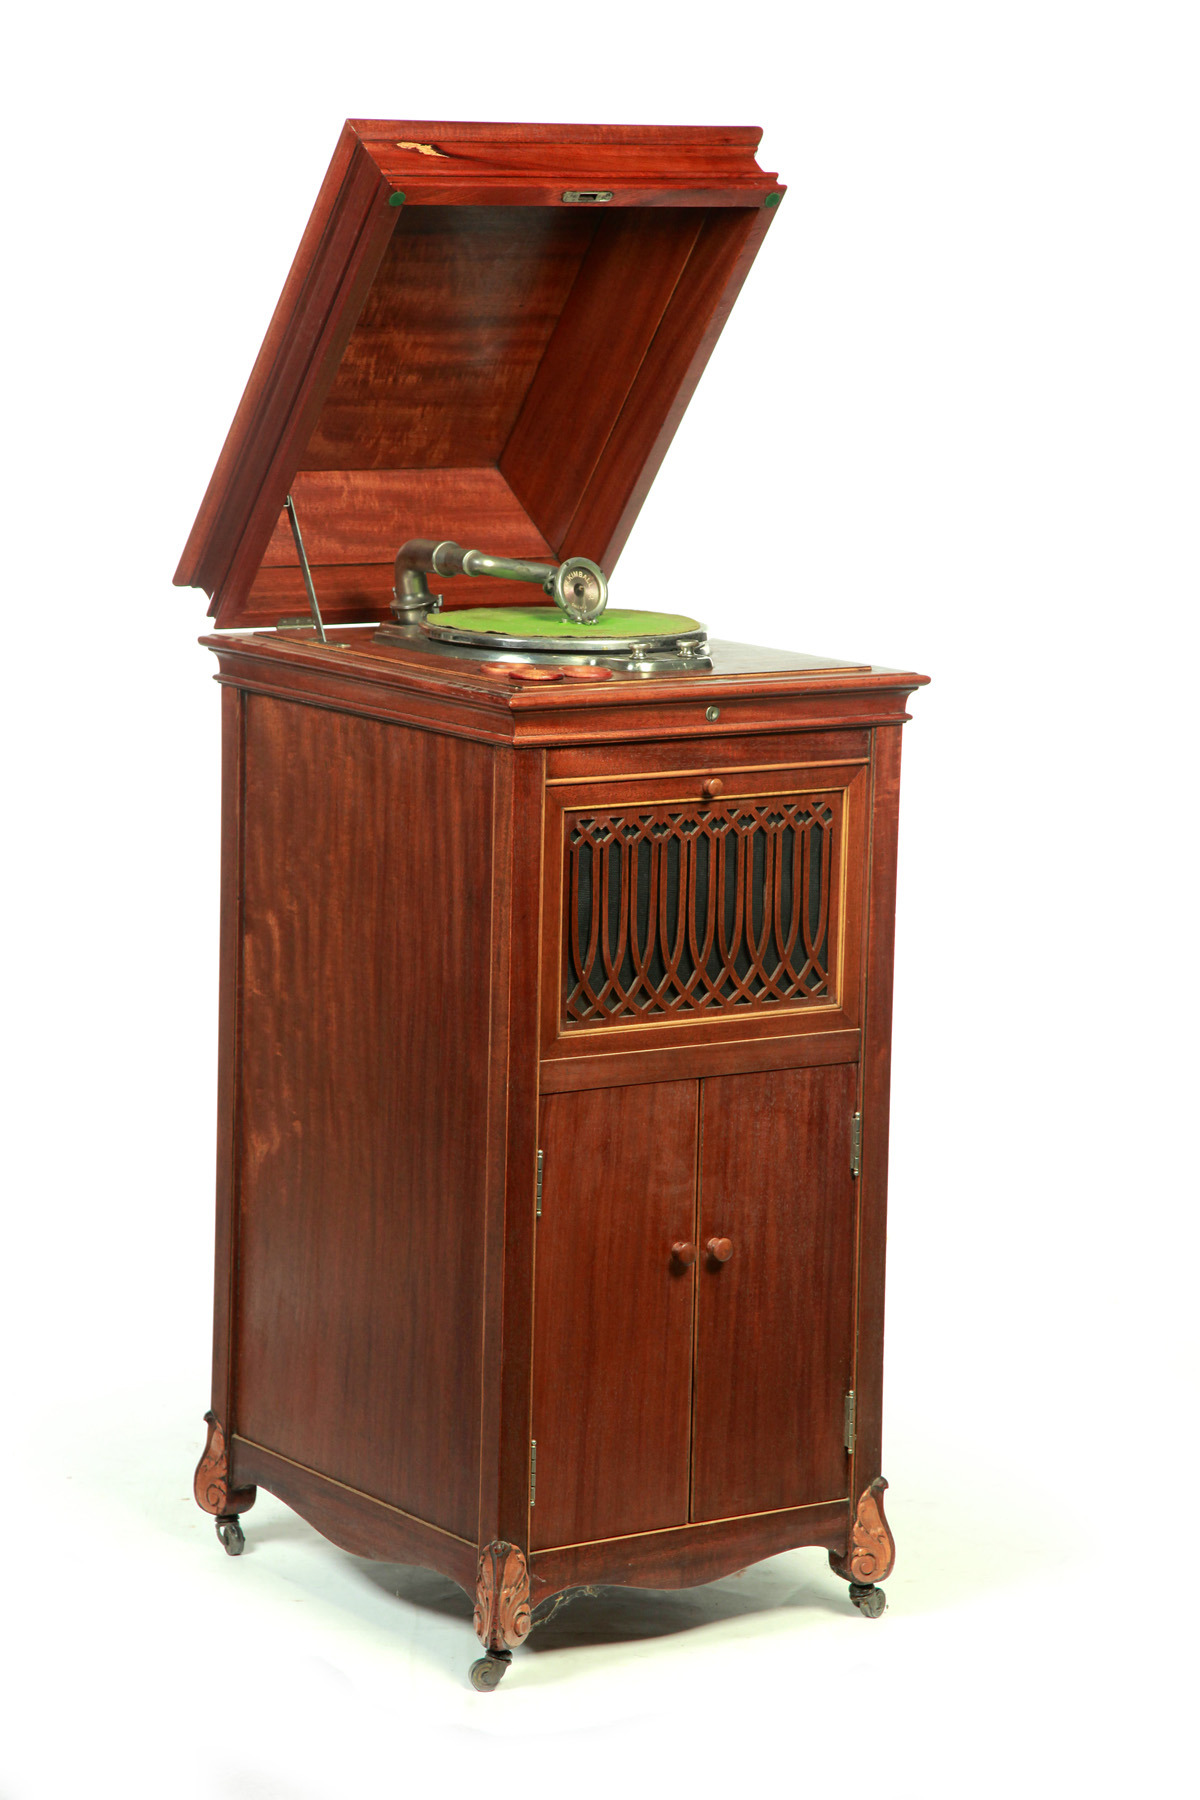 W W KIMBALL PHONOGRAPH Chicago 1d29bb